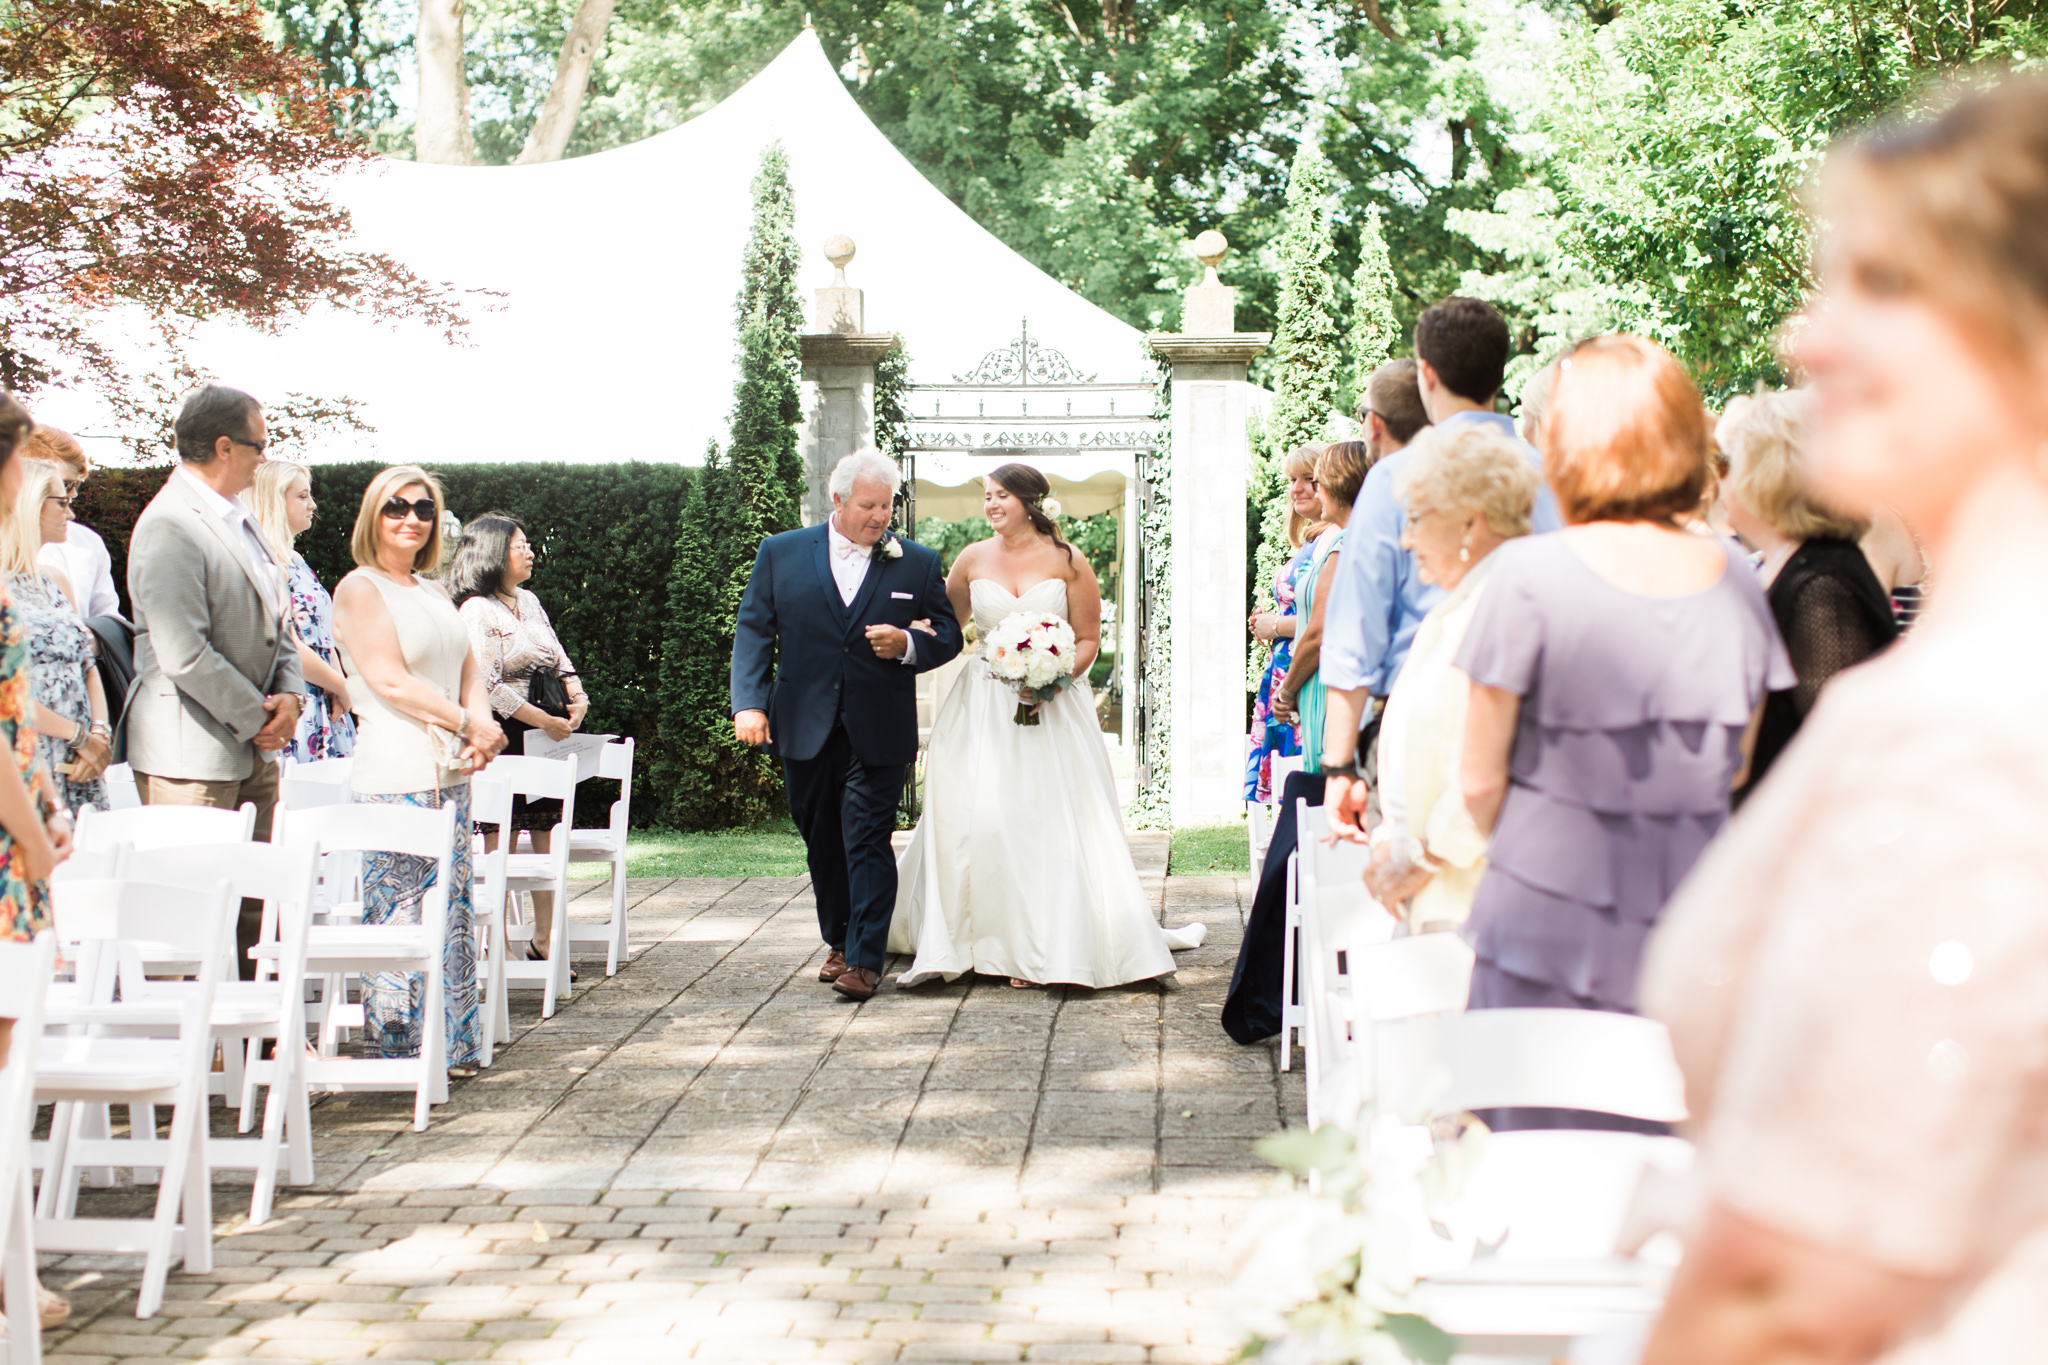 Michele focusing on capturing the emotion of the bride and her dad as they walk down the aisle